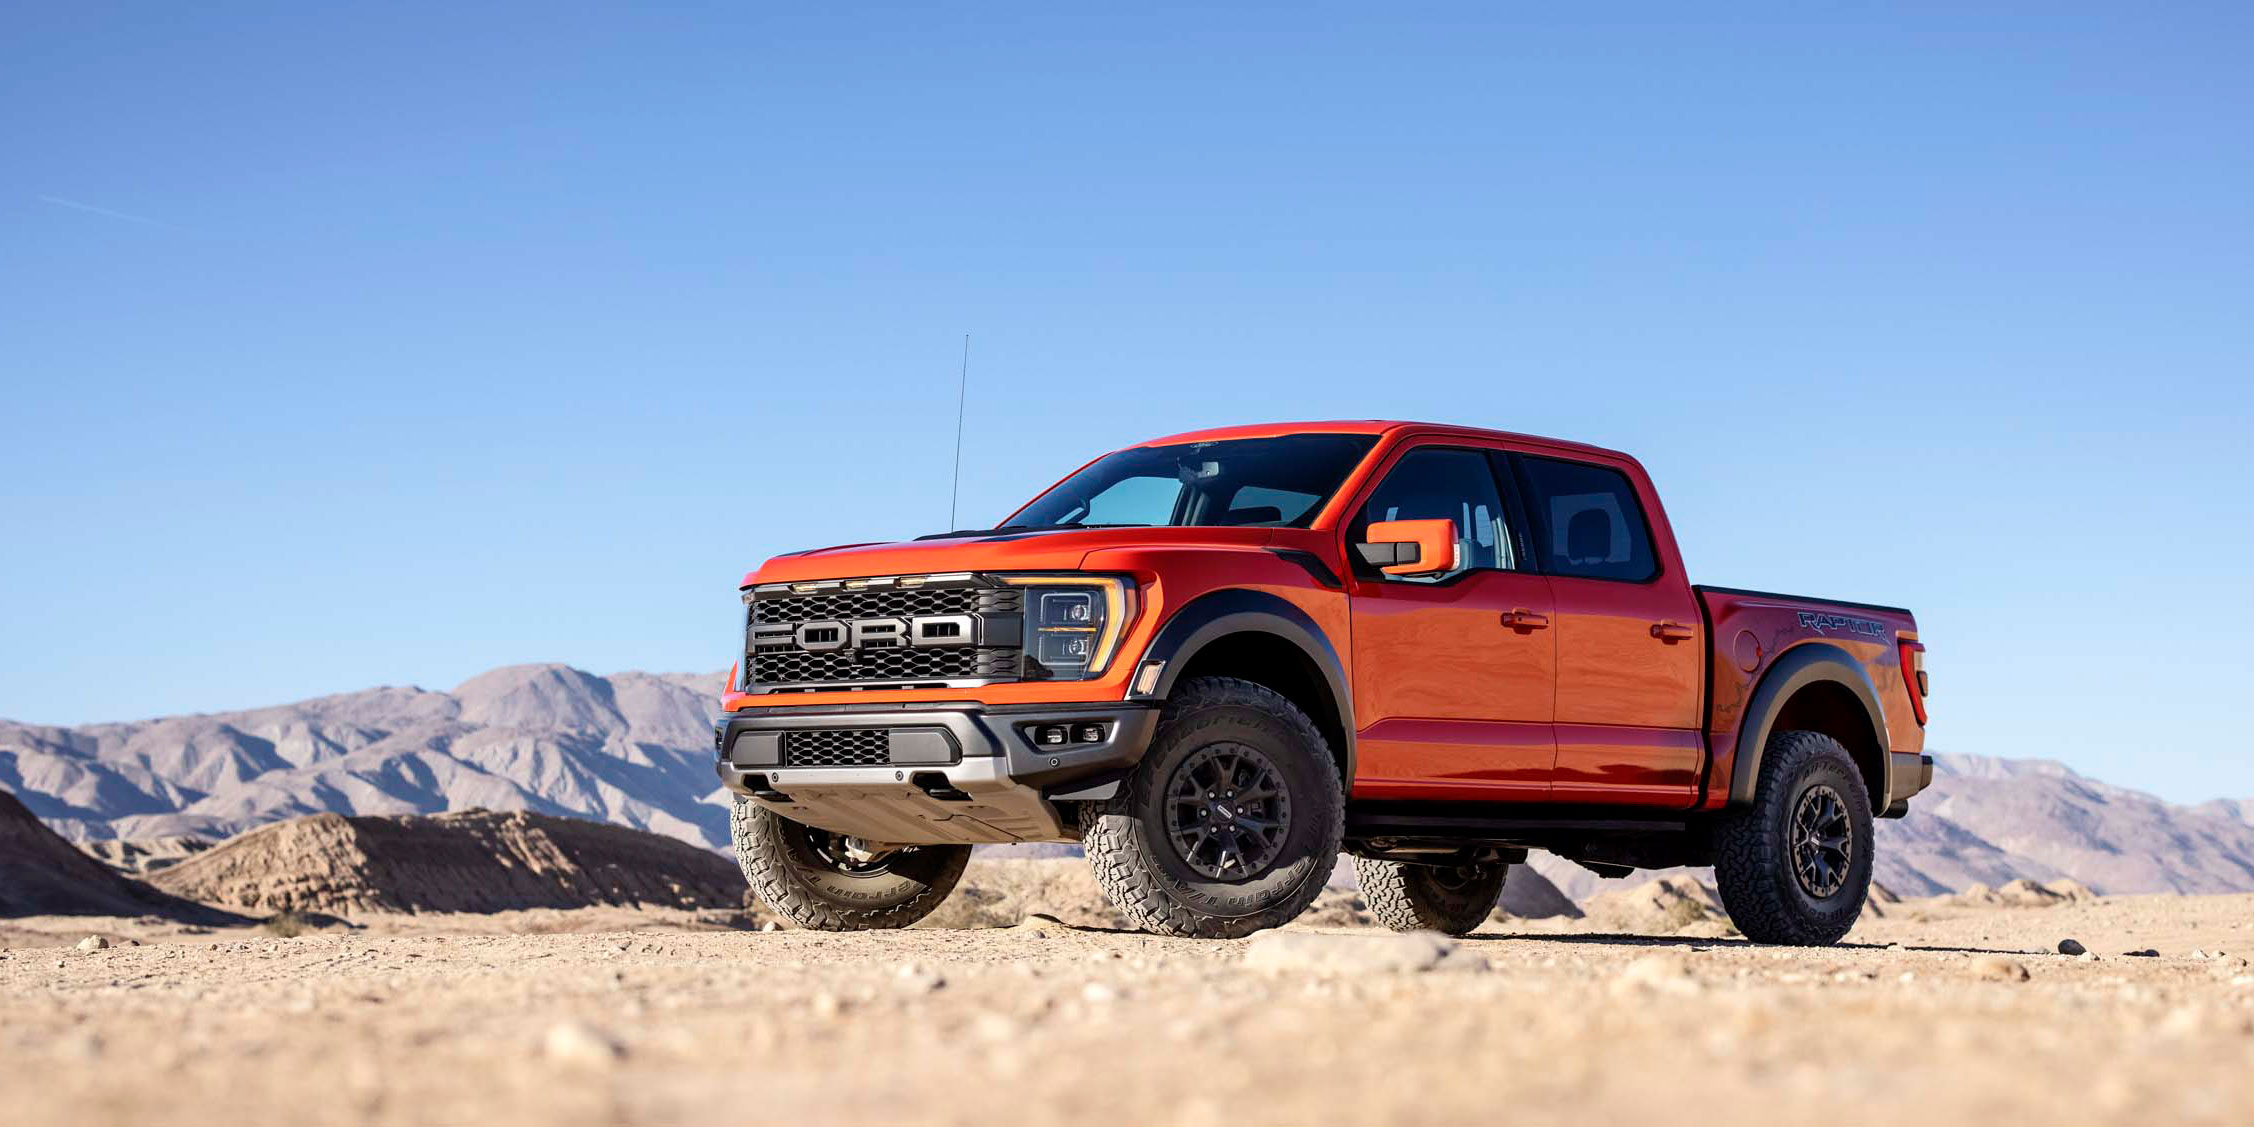 Cranking Up the O.G. Desert Predator: Ford Unleashes Most Off-Road Capable and Connected F-150 Raptor Ever